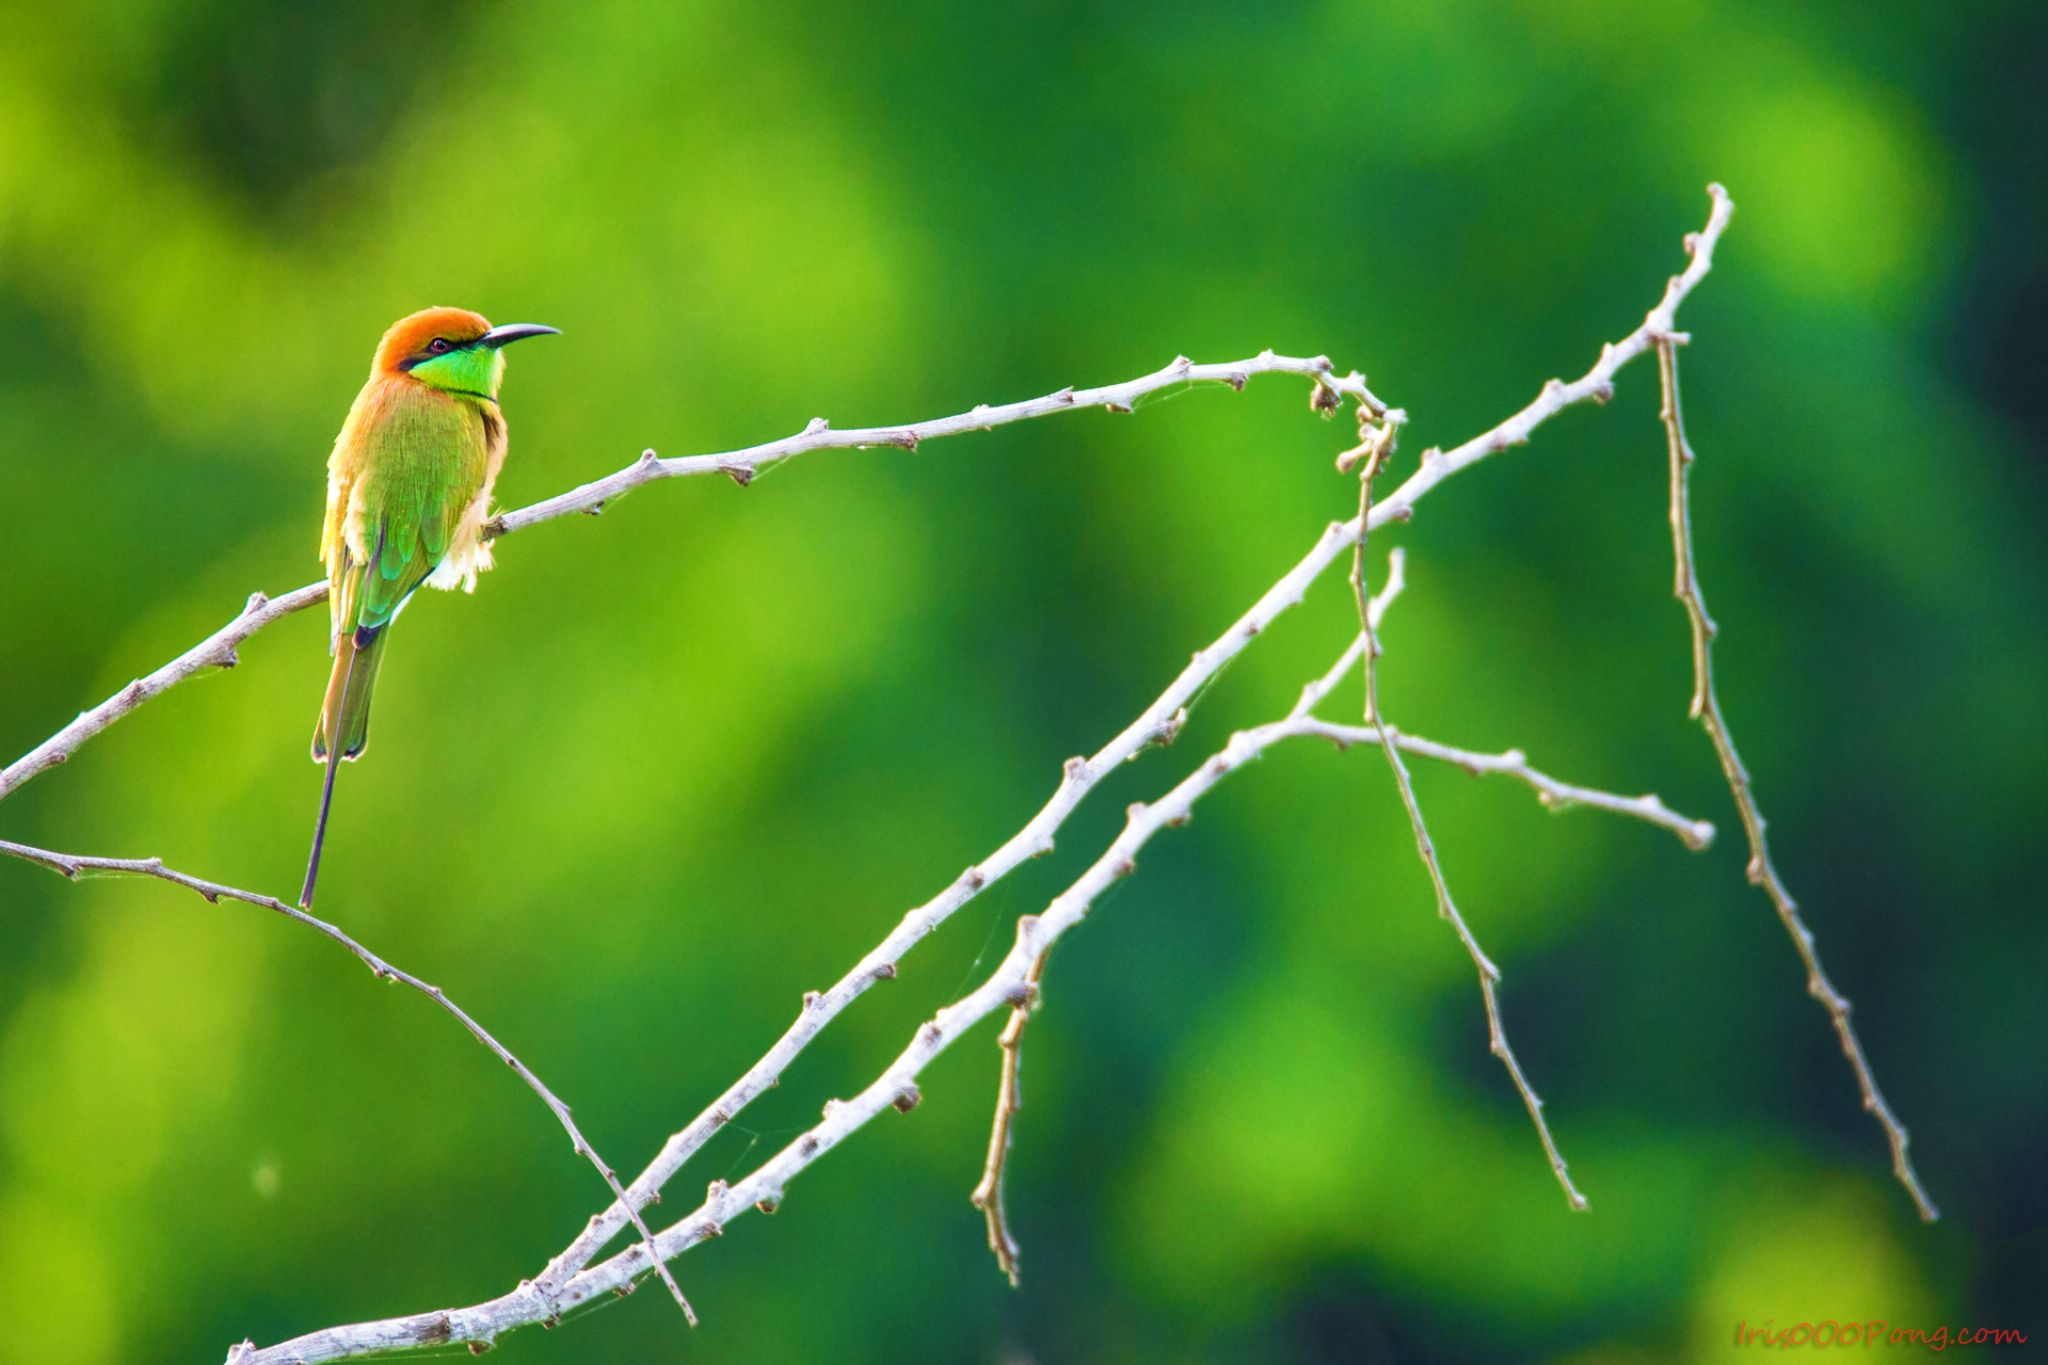 BEE EATER by iris0o0pong